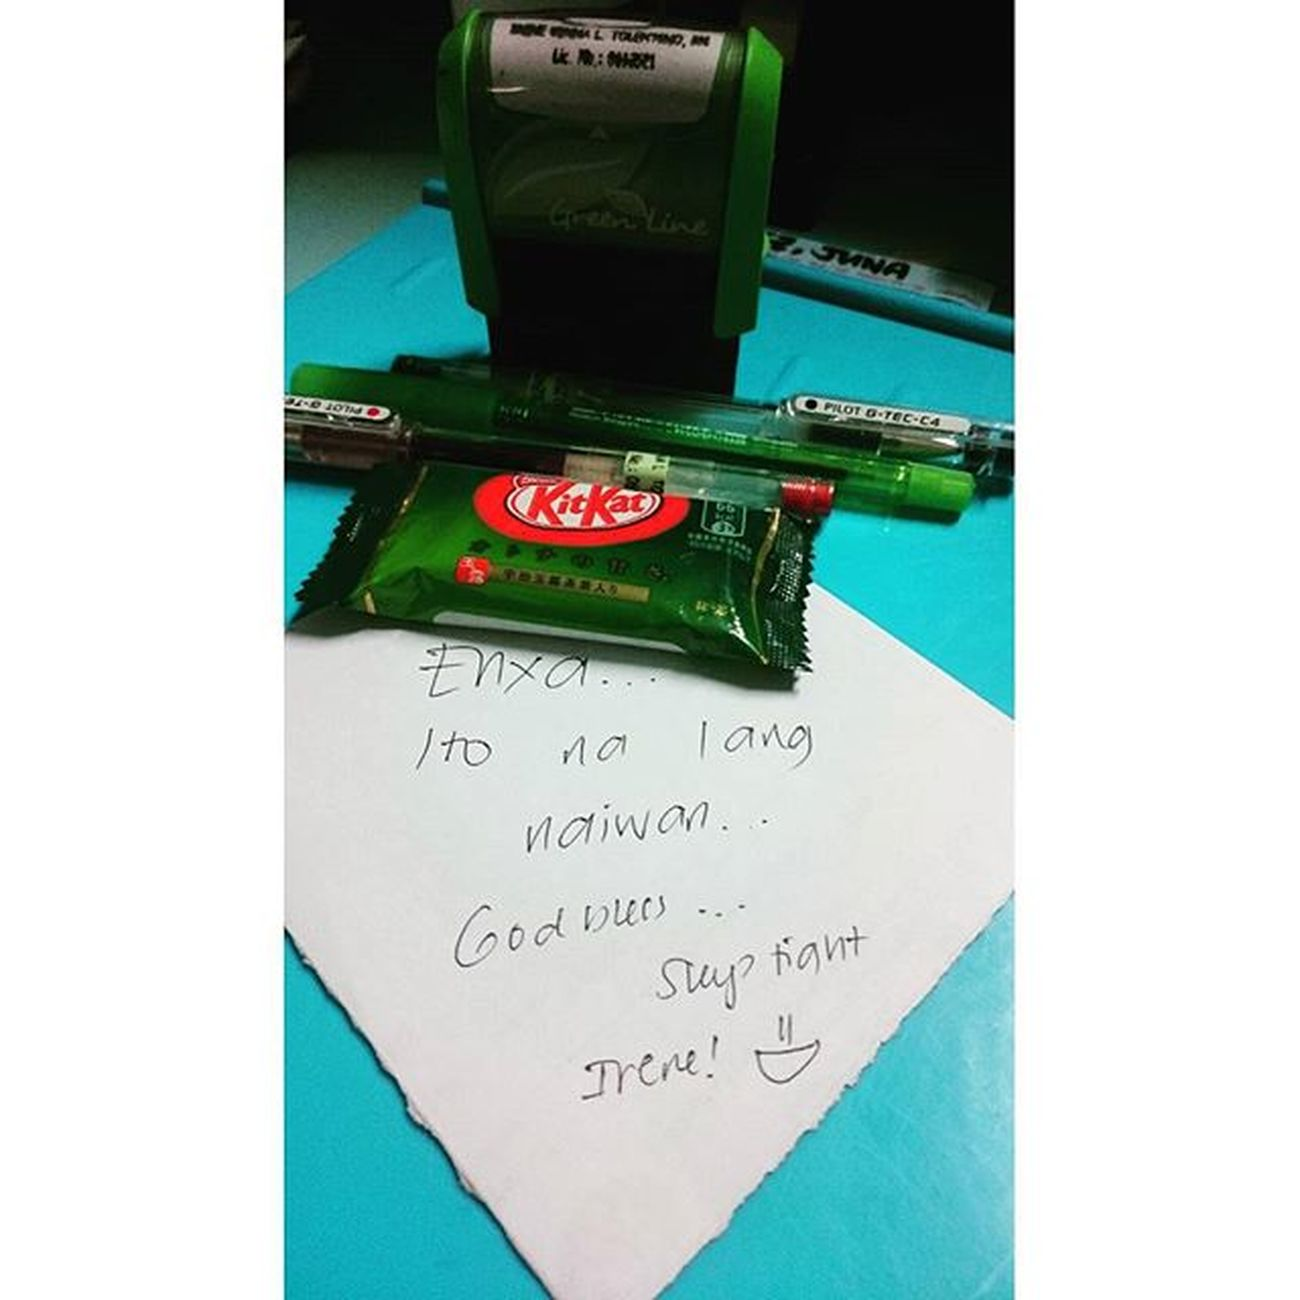 From a thoughtful kittymeow. Gracias @tintin_babes 👍👌😸 Kitkatgreentea Kittykristina